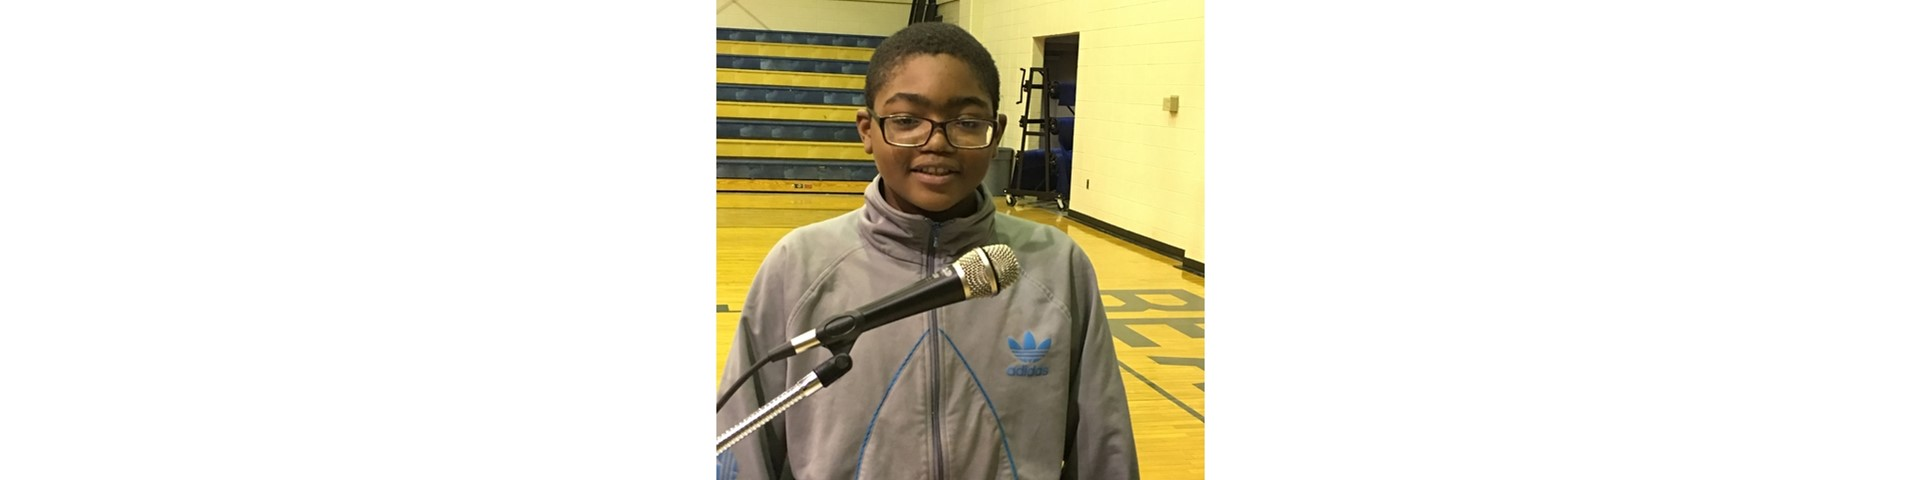 Second place Spelling Bee winner, Cameron Lewis, will represent Keith Middle-High at The Countywide Spelling Bee, Friday, 09 February 2018.